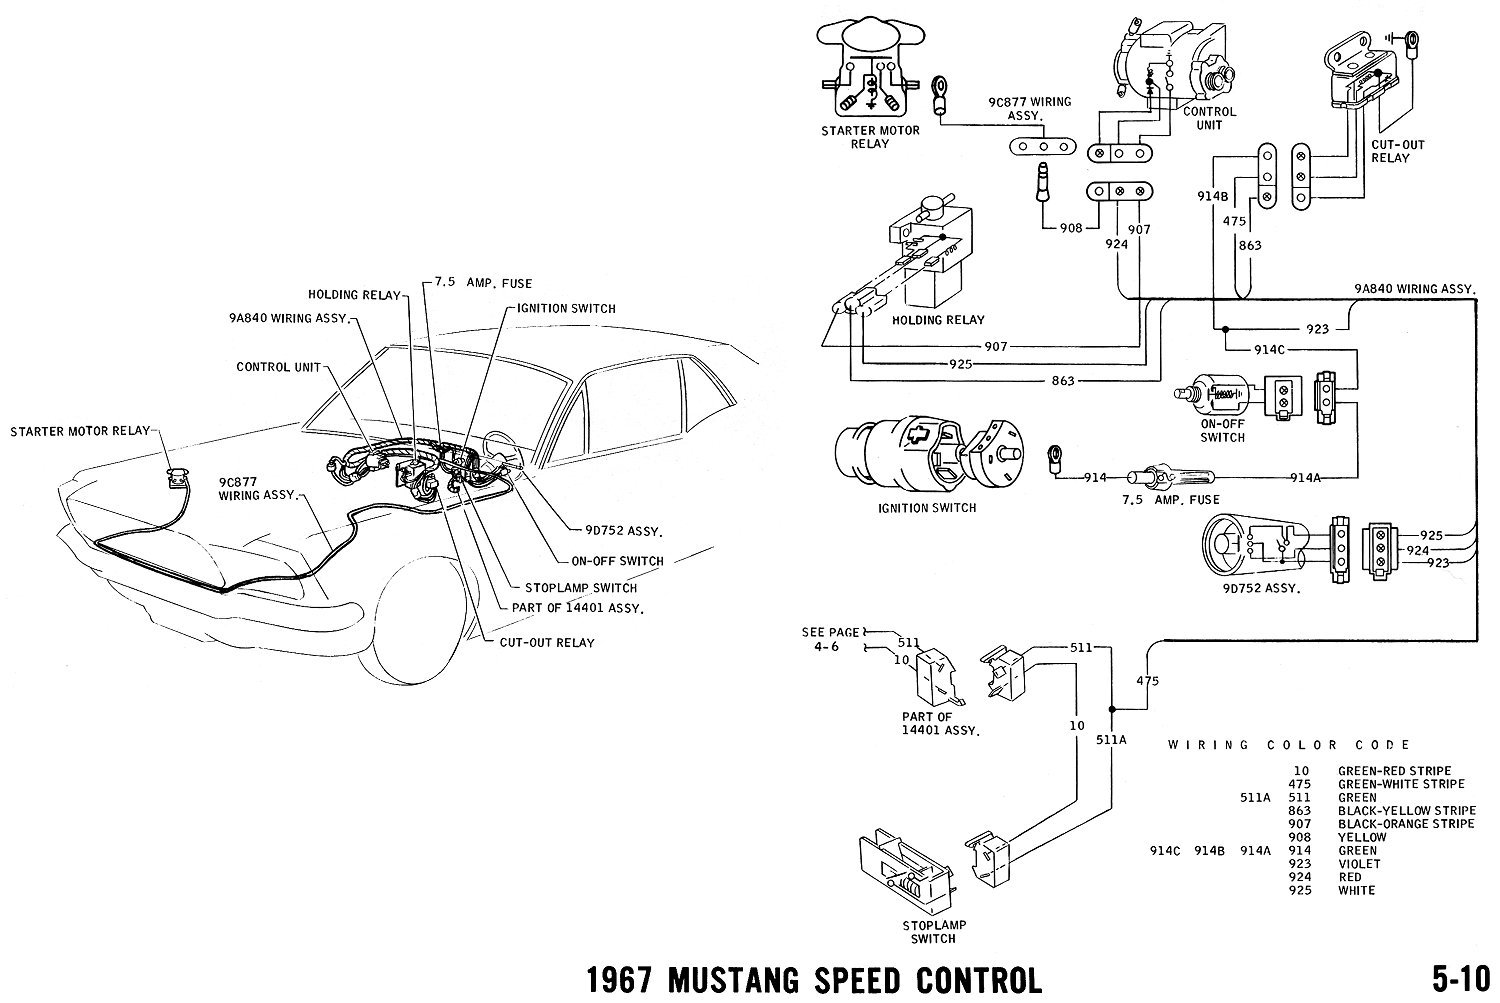 1967 Mustang Wiring Diagram Free on chrysler charging system wiring